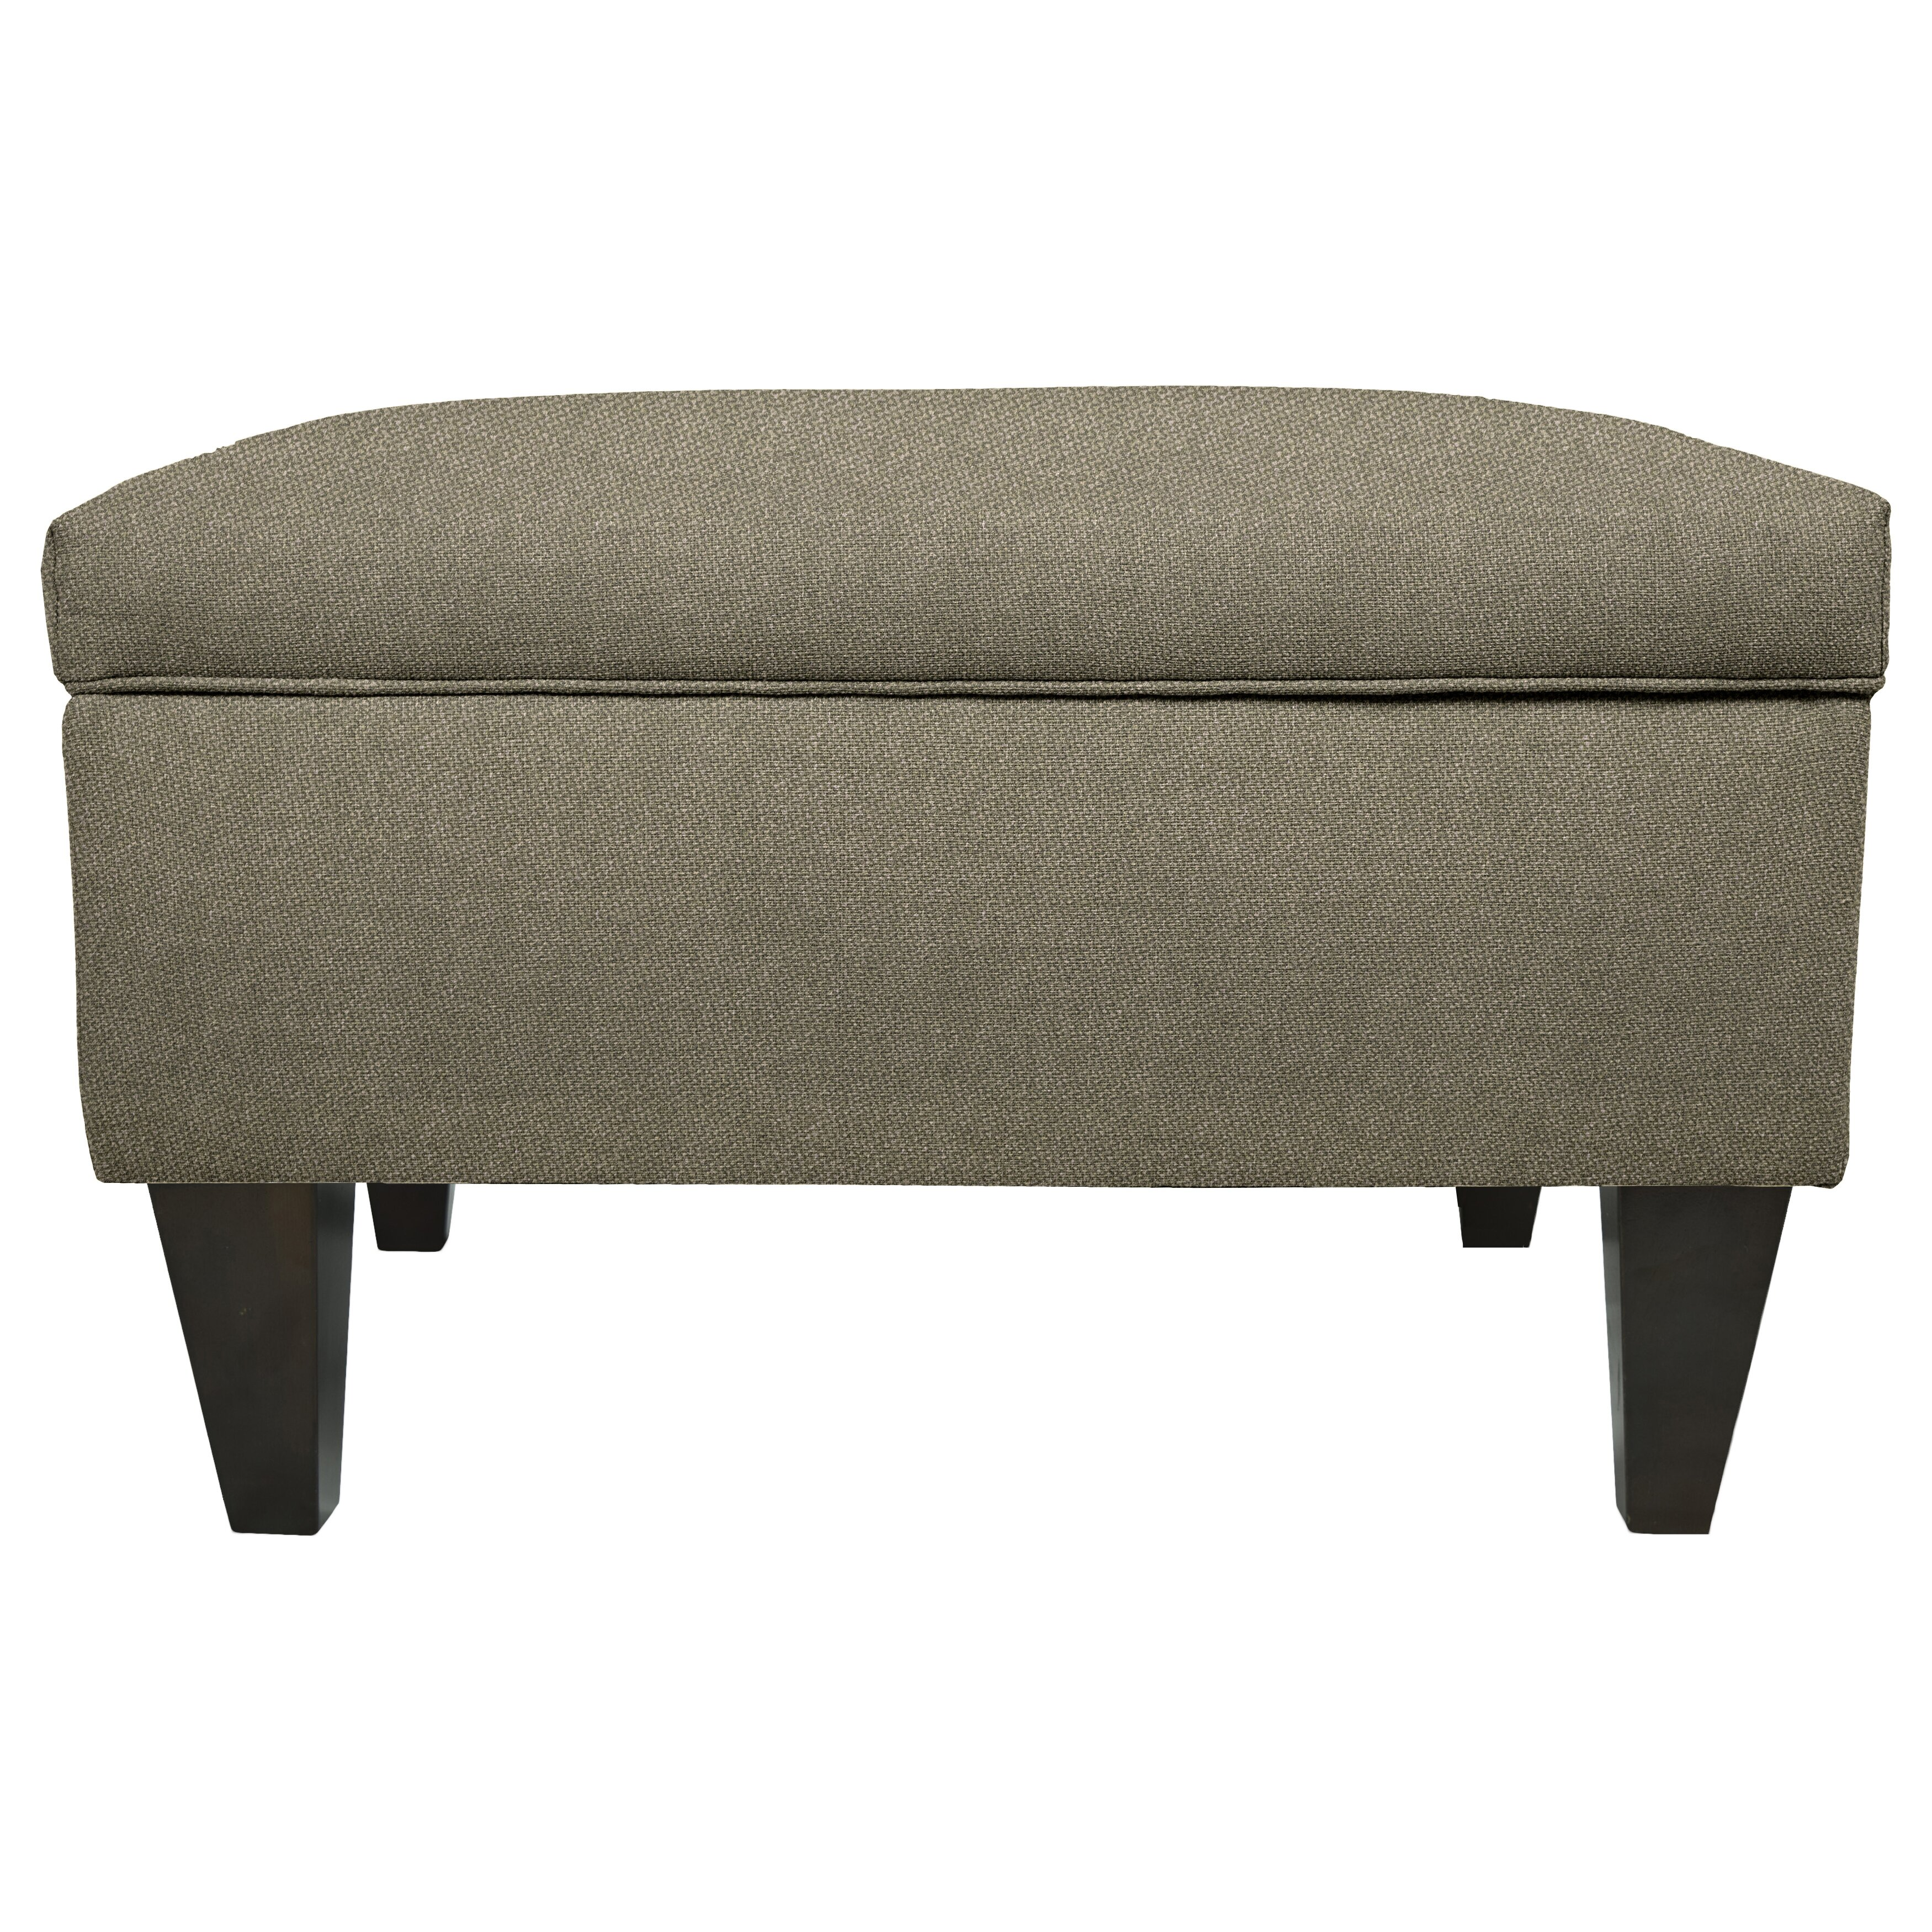 Mjlfurniture dawson legged box storage ottoman wayfair for Furniture box